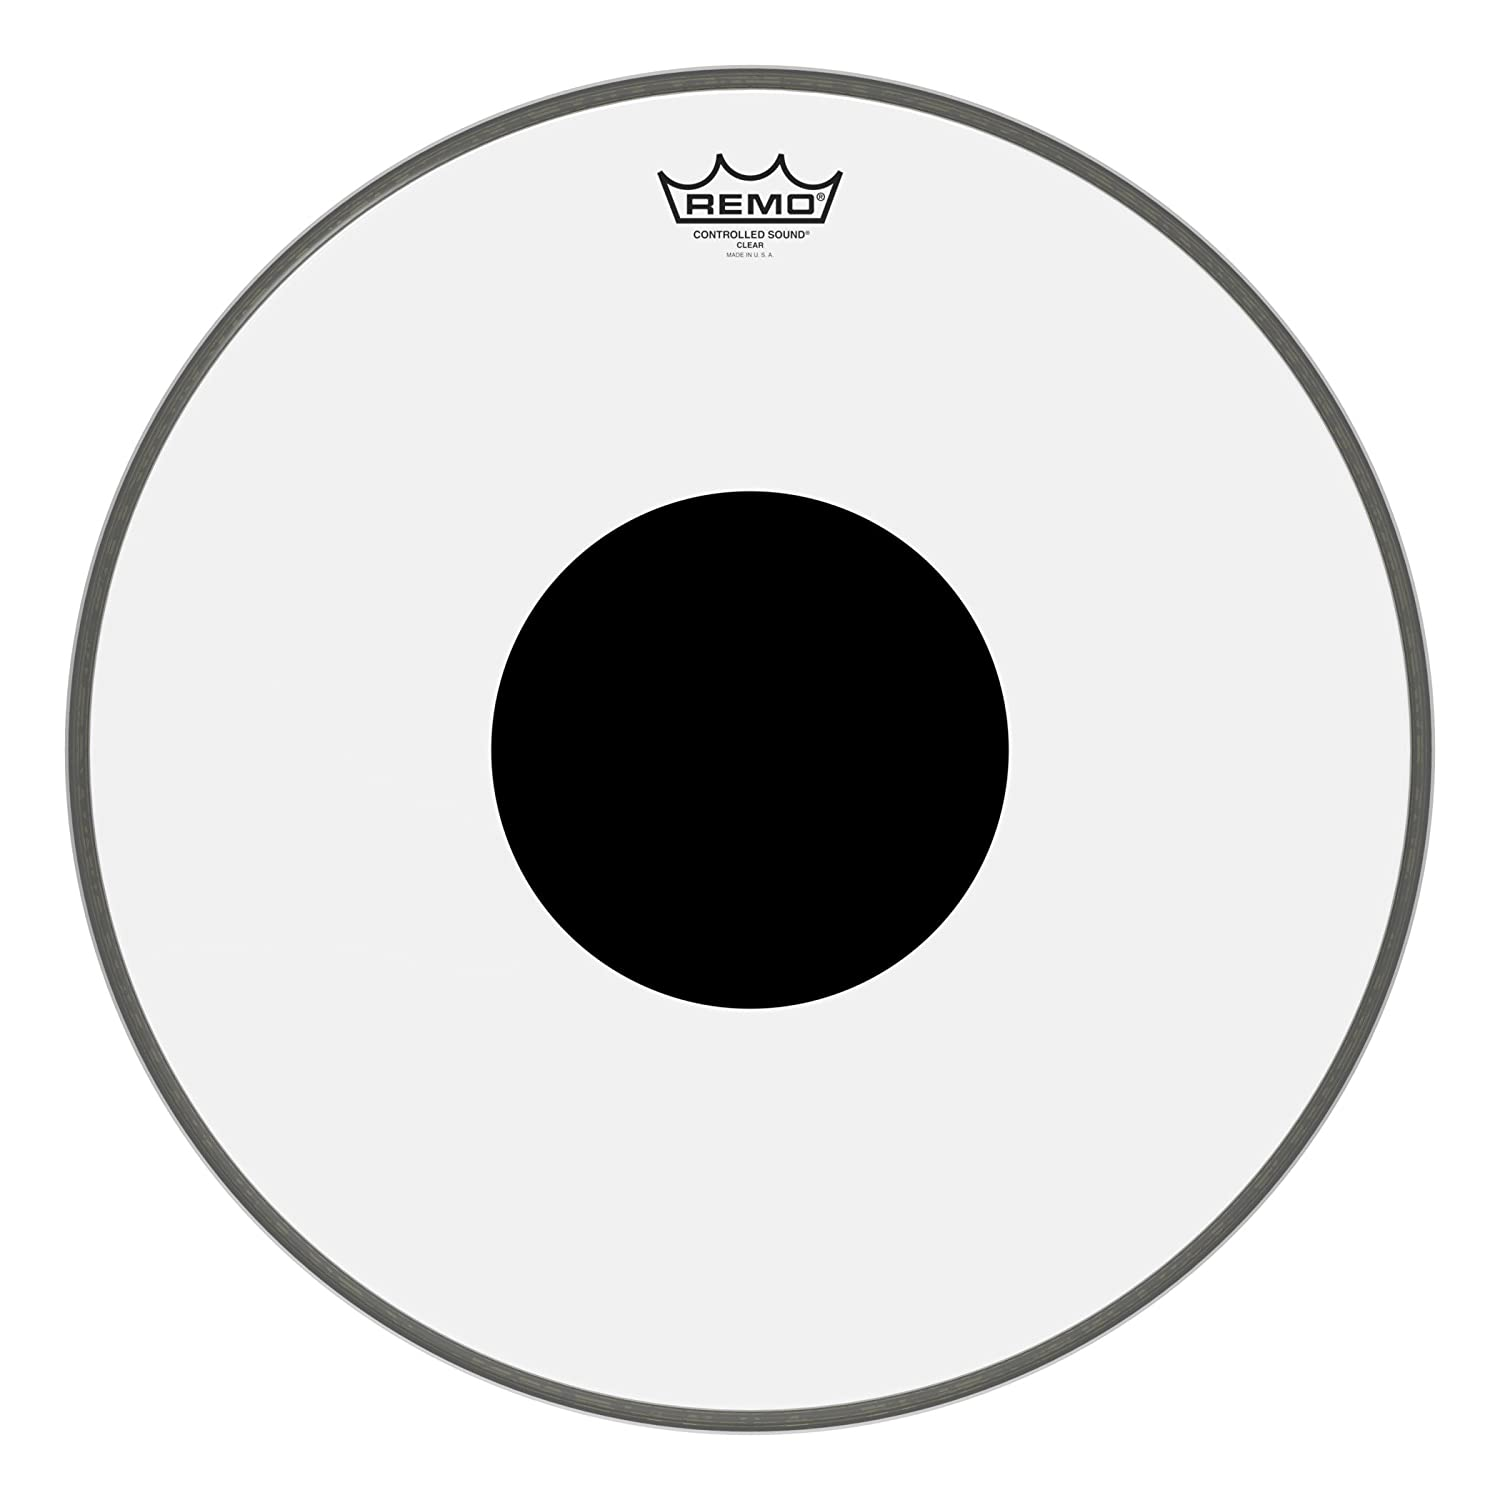 Remo Controlled Sound Clear Drum Head with Black Dot - 13 Inch KMC Music Inc CS0313-10 20131